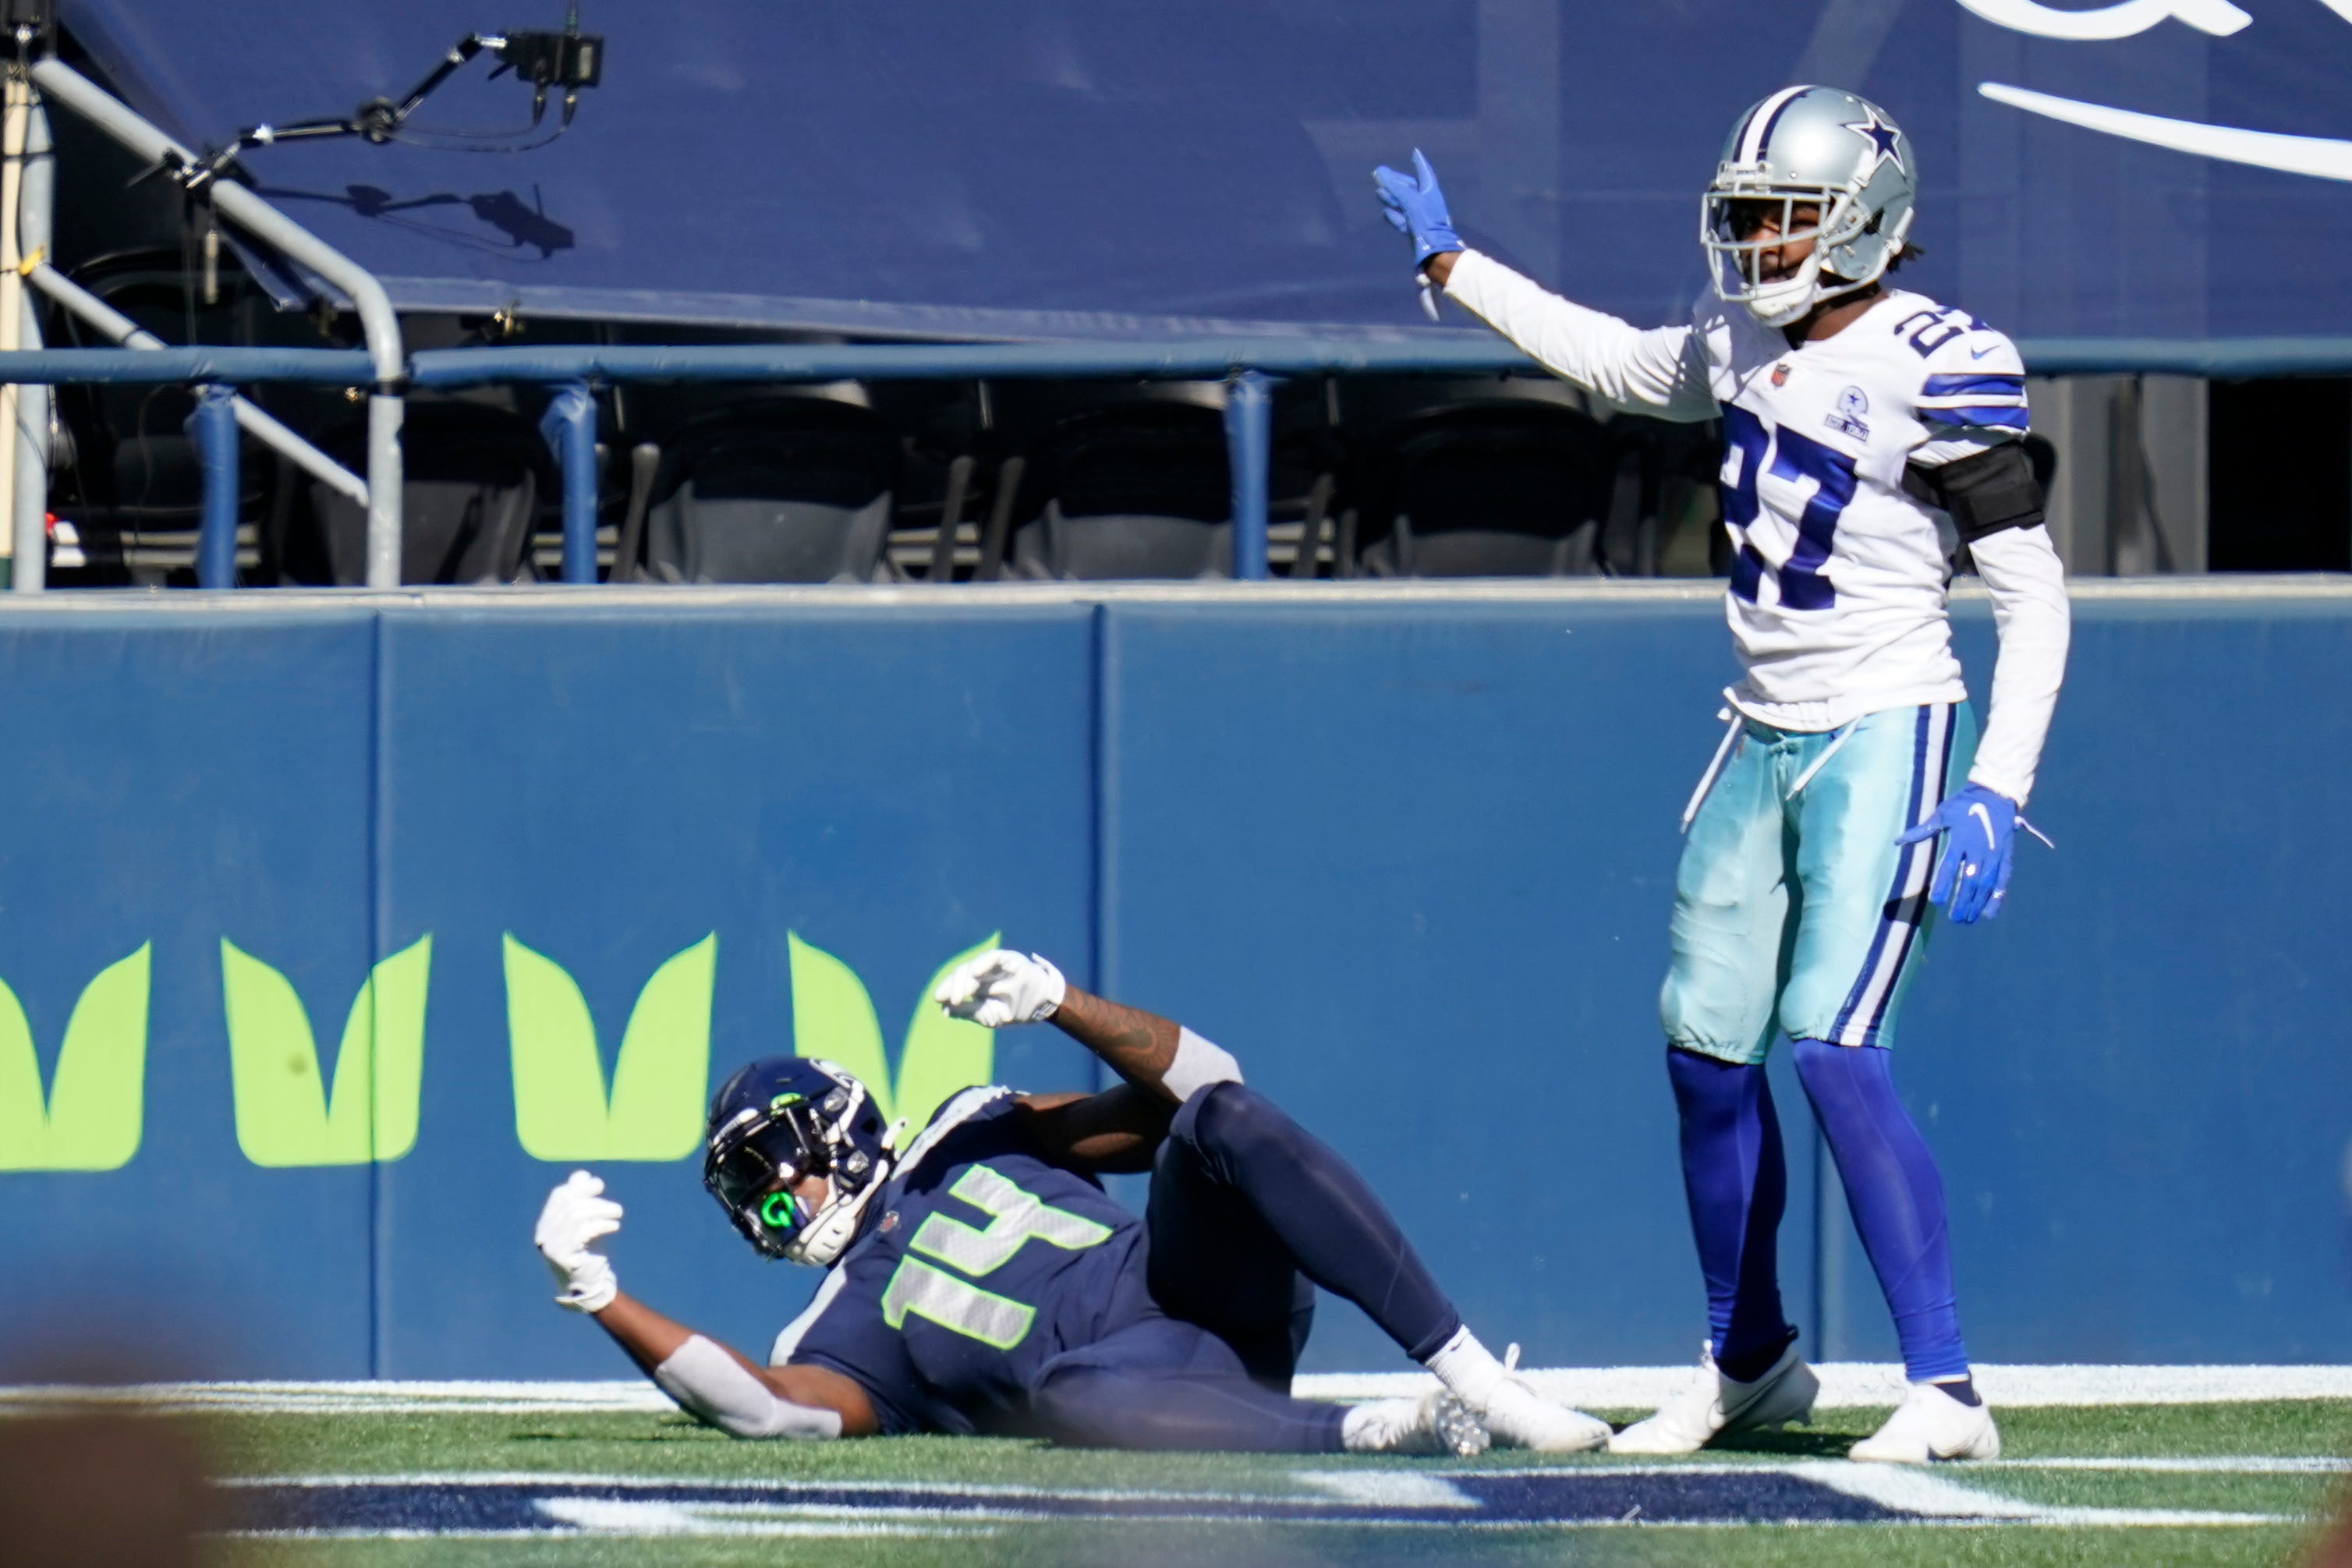 Seahawks WR DK Metcalf loses easy touchdown, fumbles vs. Cowboys after easing up on catch